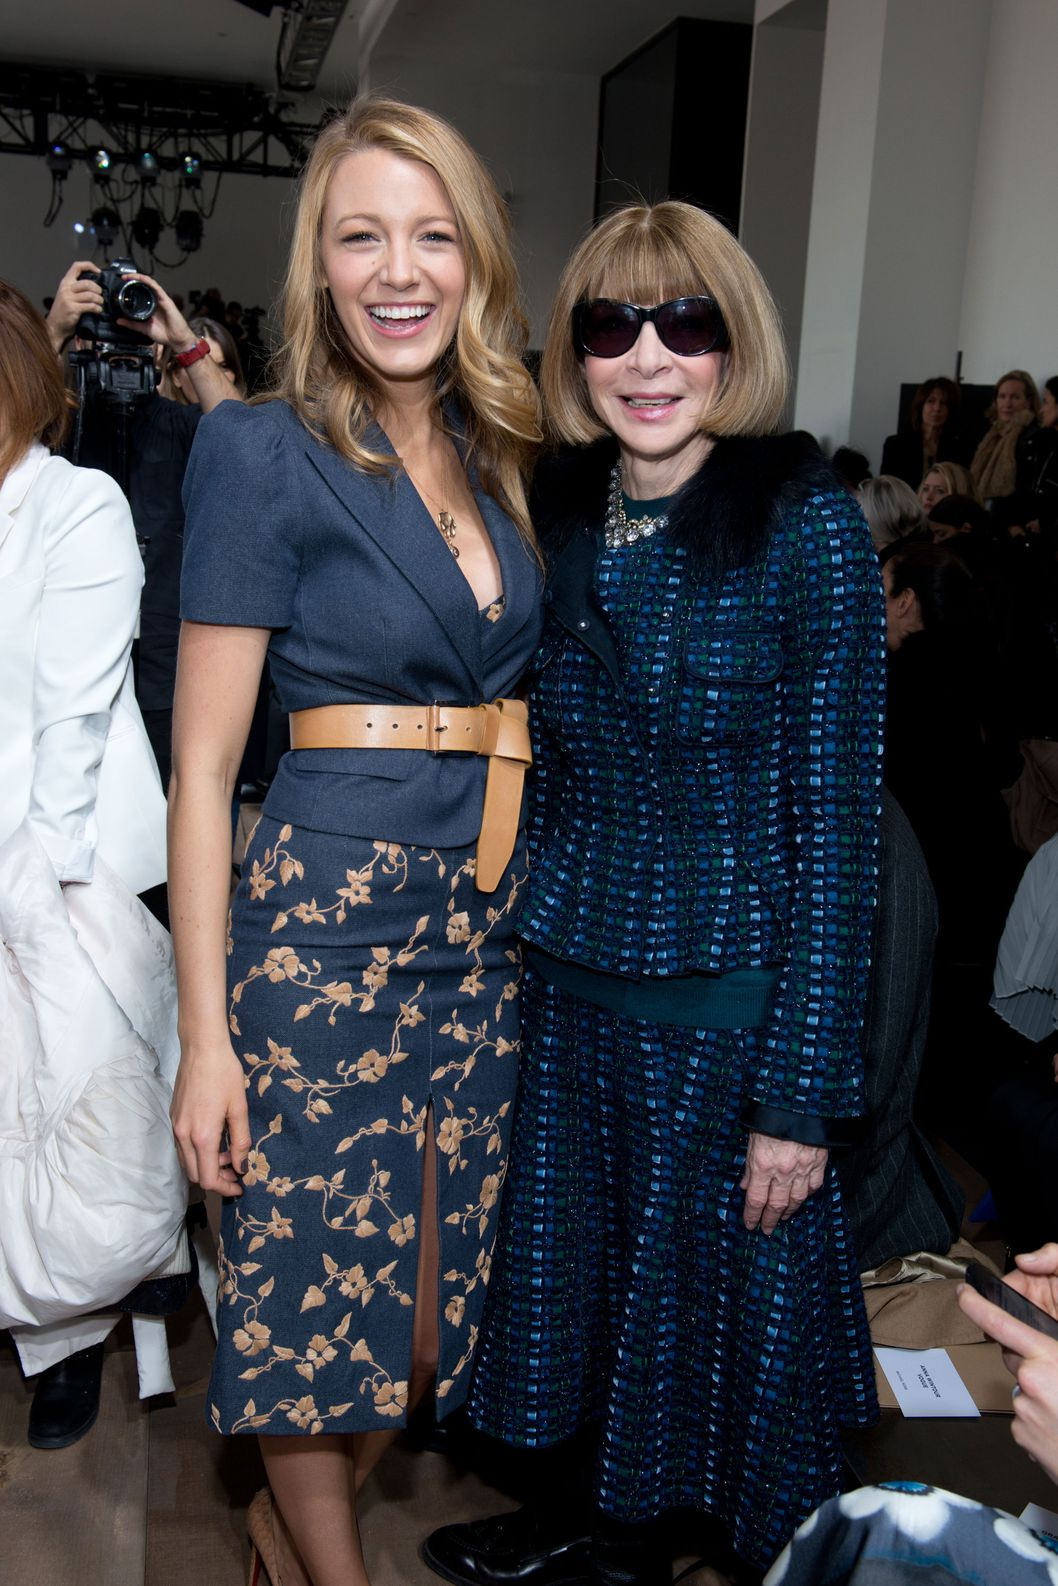 NEW YORK, NY - FEBRUARY 12: (L-R) Actress Blake Lively and Anna Wintour attend the Michael Kors Show during Mercedes-Benz Fashion Week Fall 2014 at Spring Studios on February 12, 2014 in New York City.  (Photo by Noam Galai/WireImage)